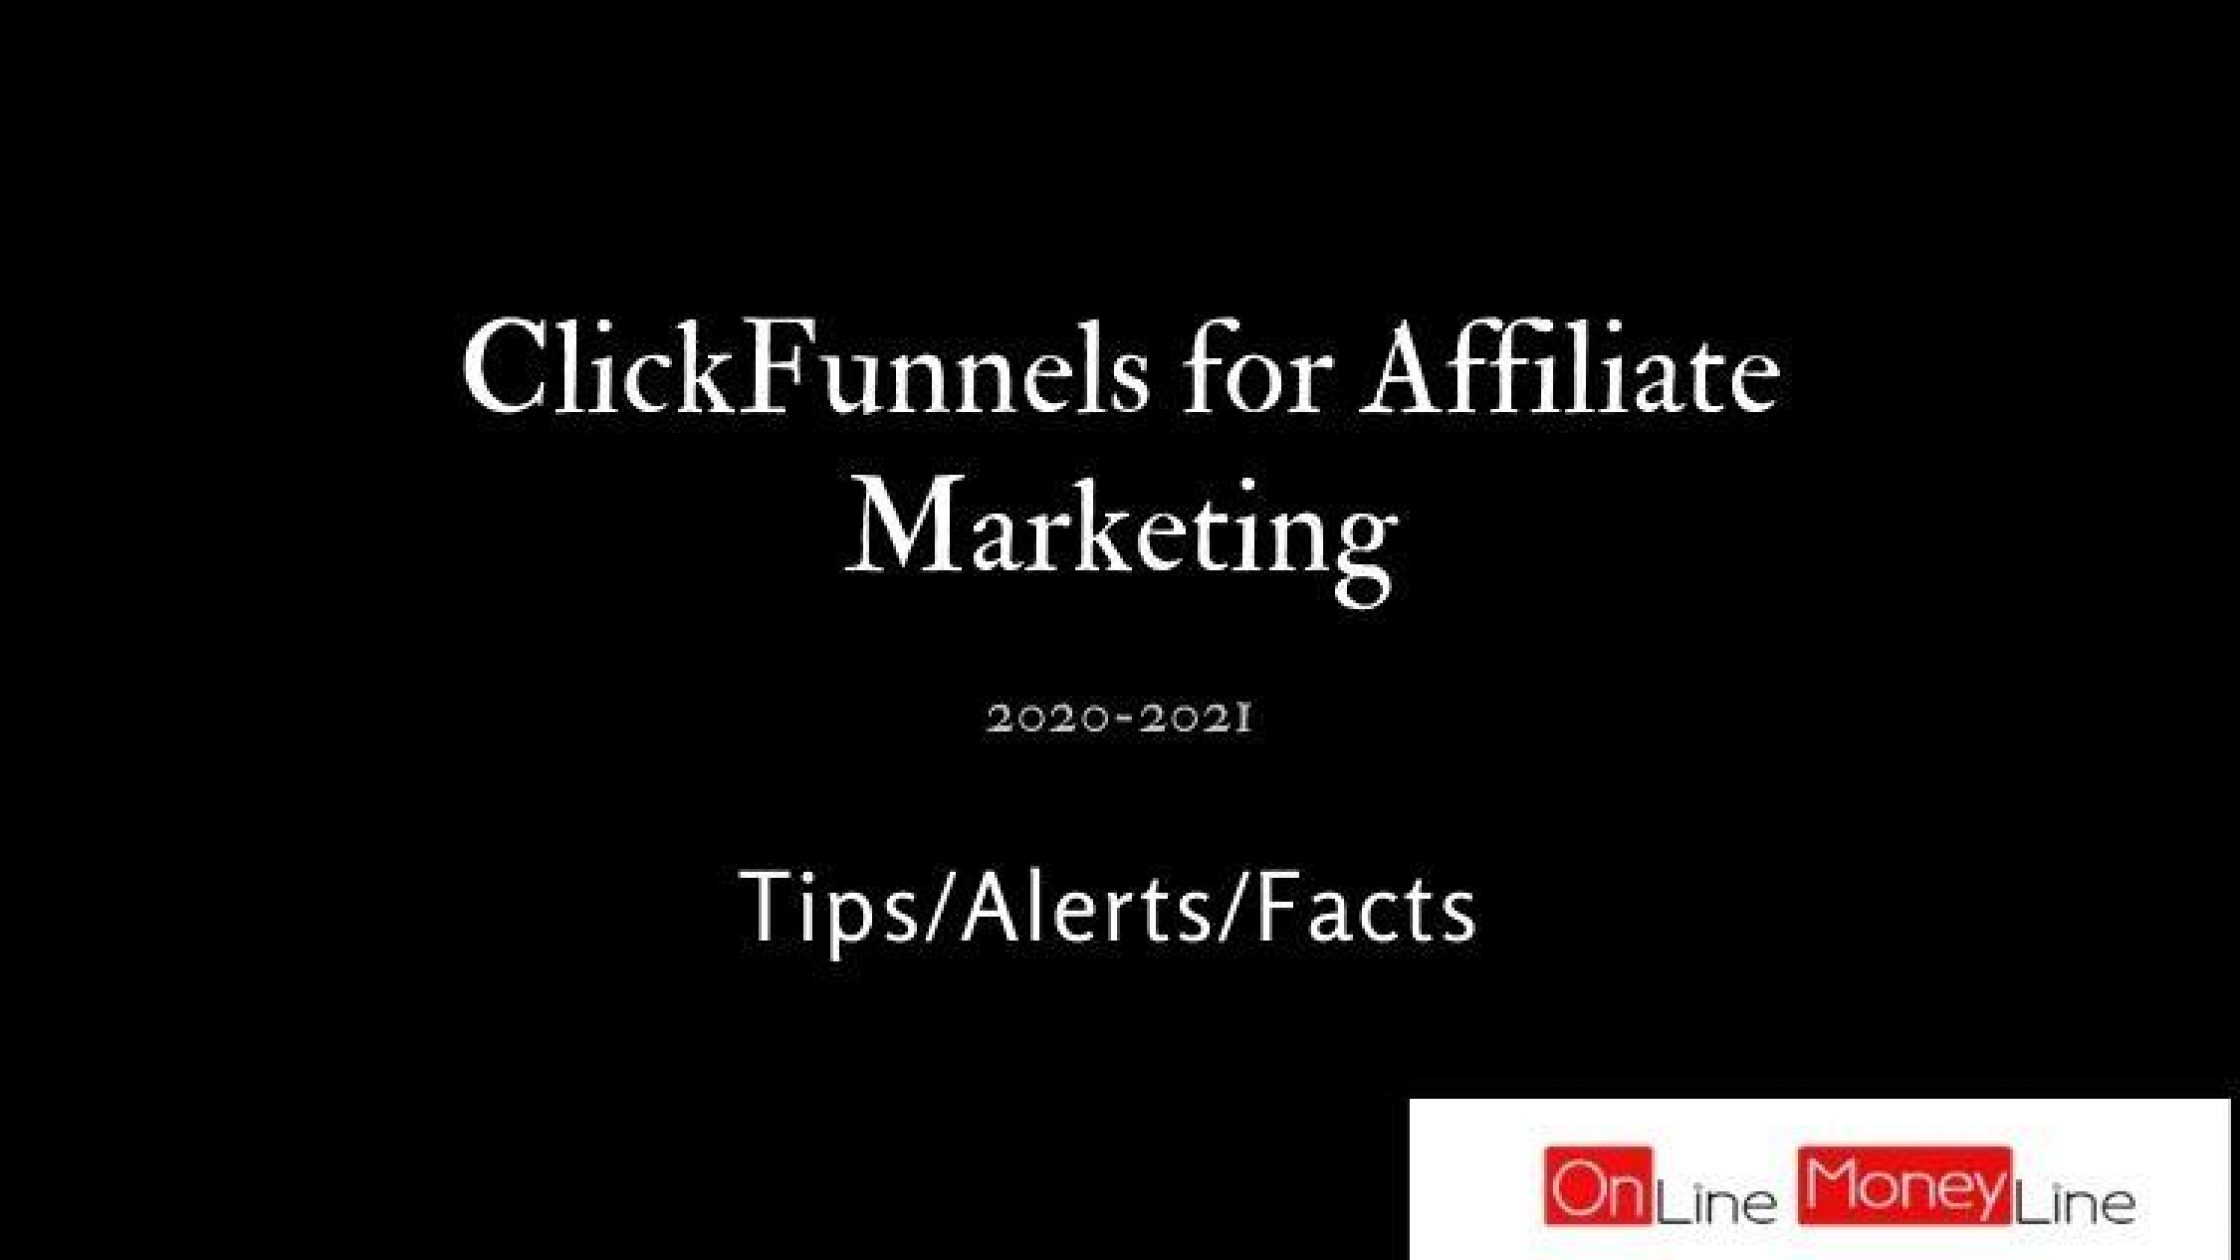 ClickFunnels for Affiliate Marketing: Tips/Alerts/Facts 2021